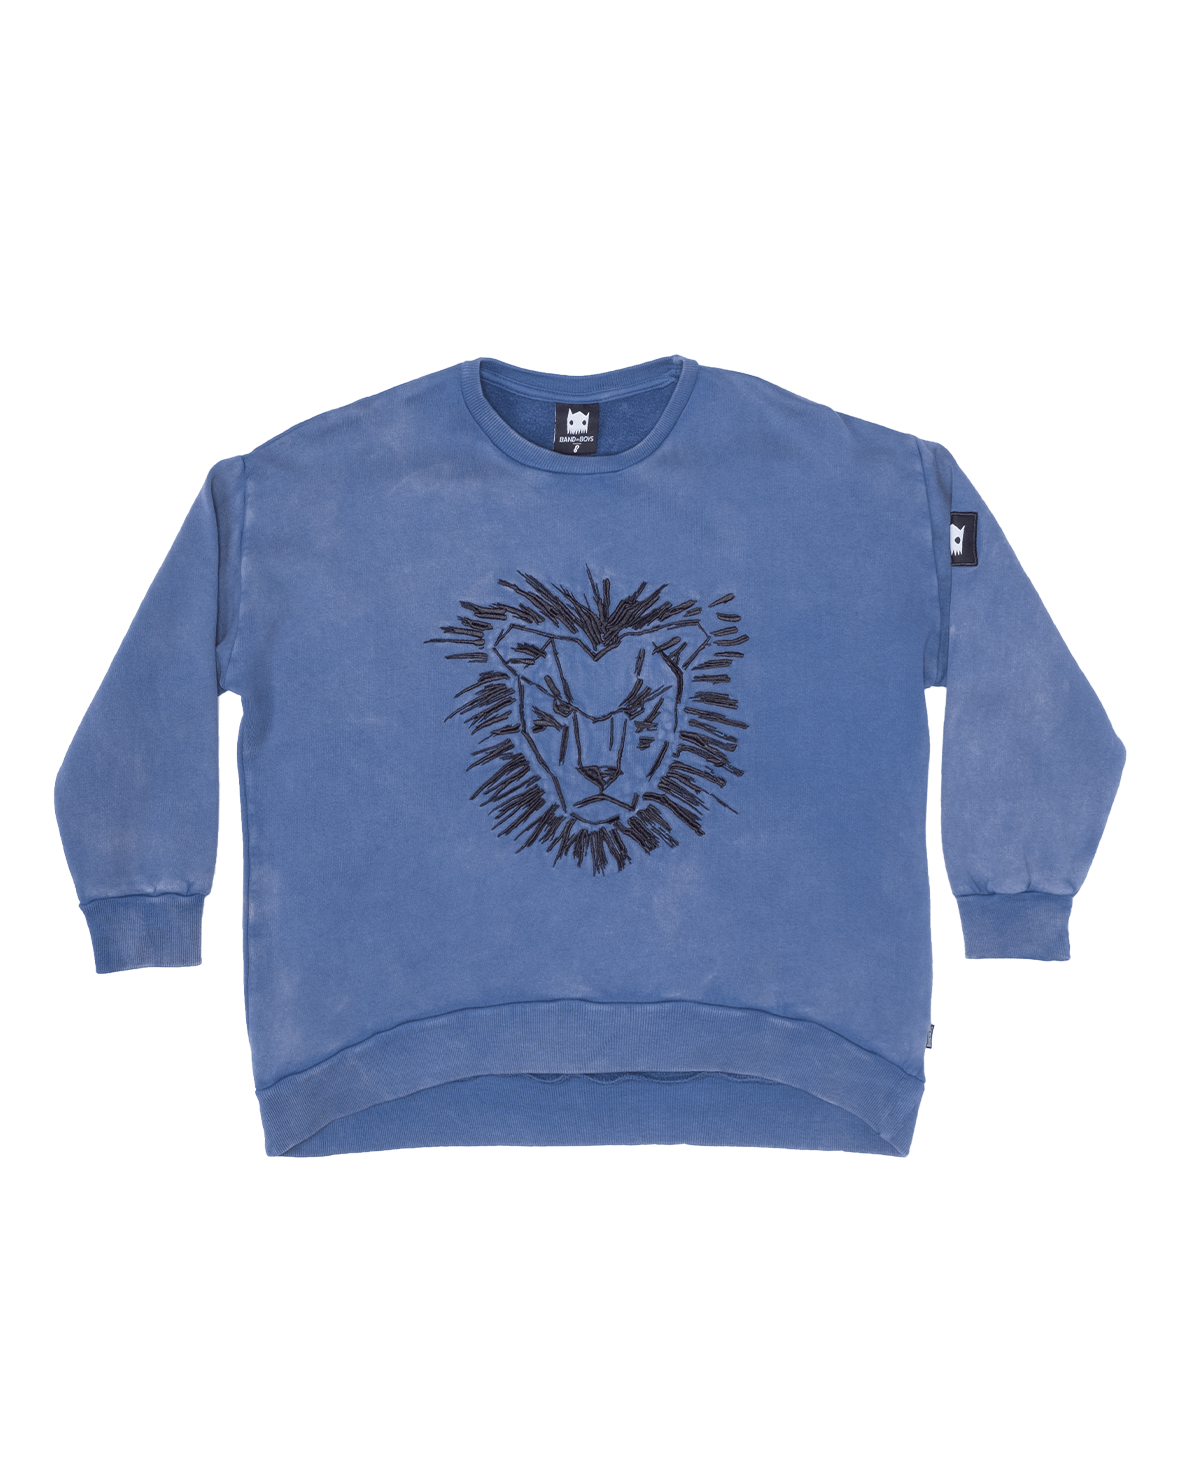 Band of boys Jumpers Lion Mane Oversized Jumper - Vintage Blue